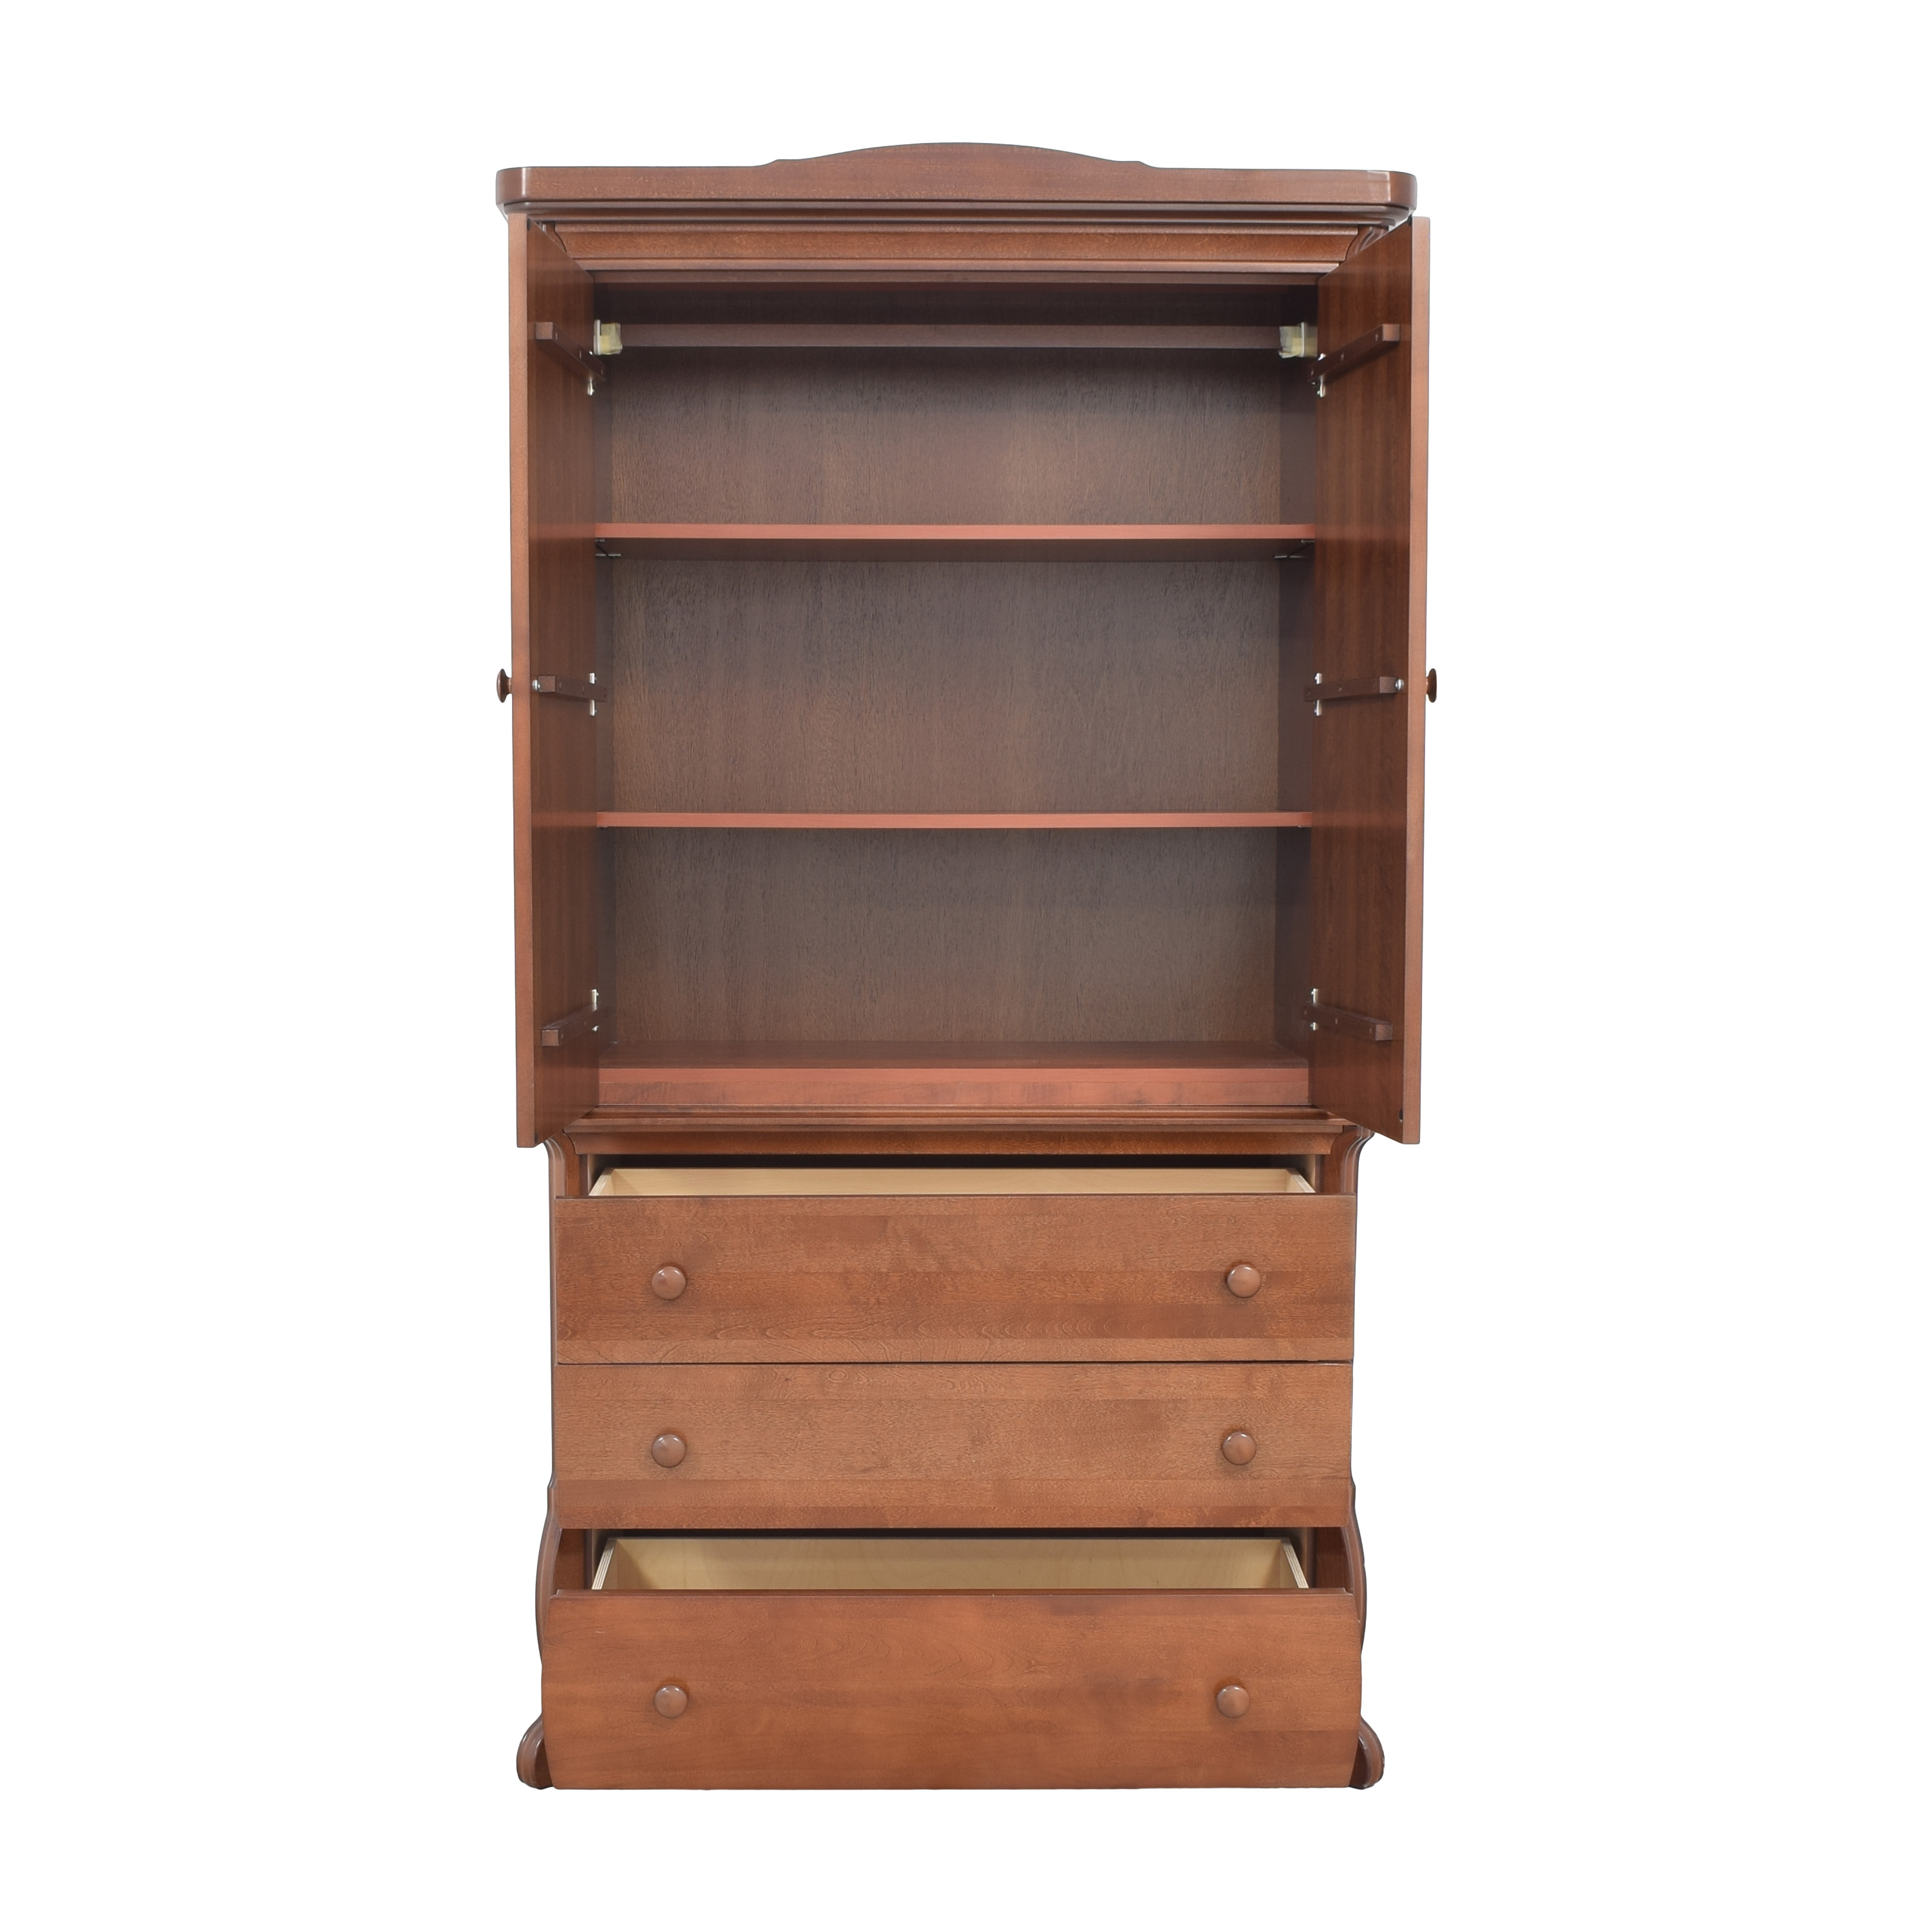 Pali Pali Armoire used